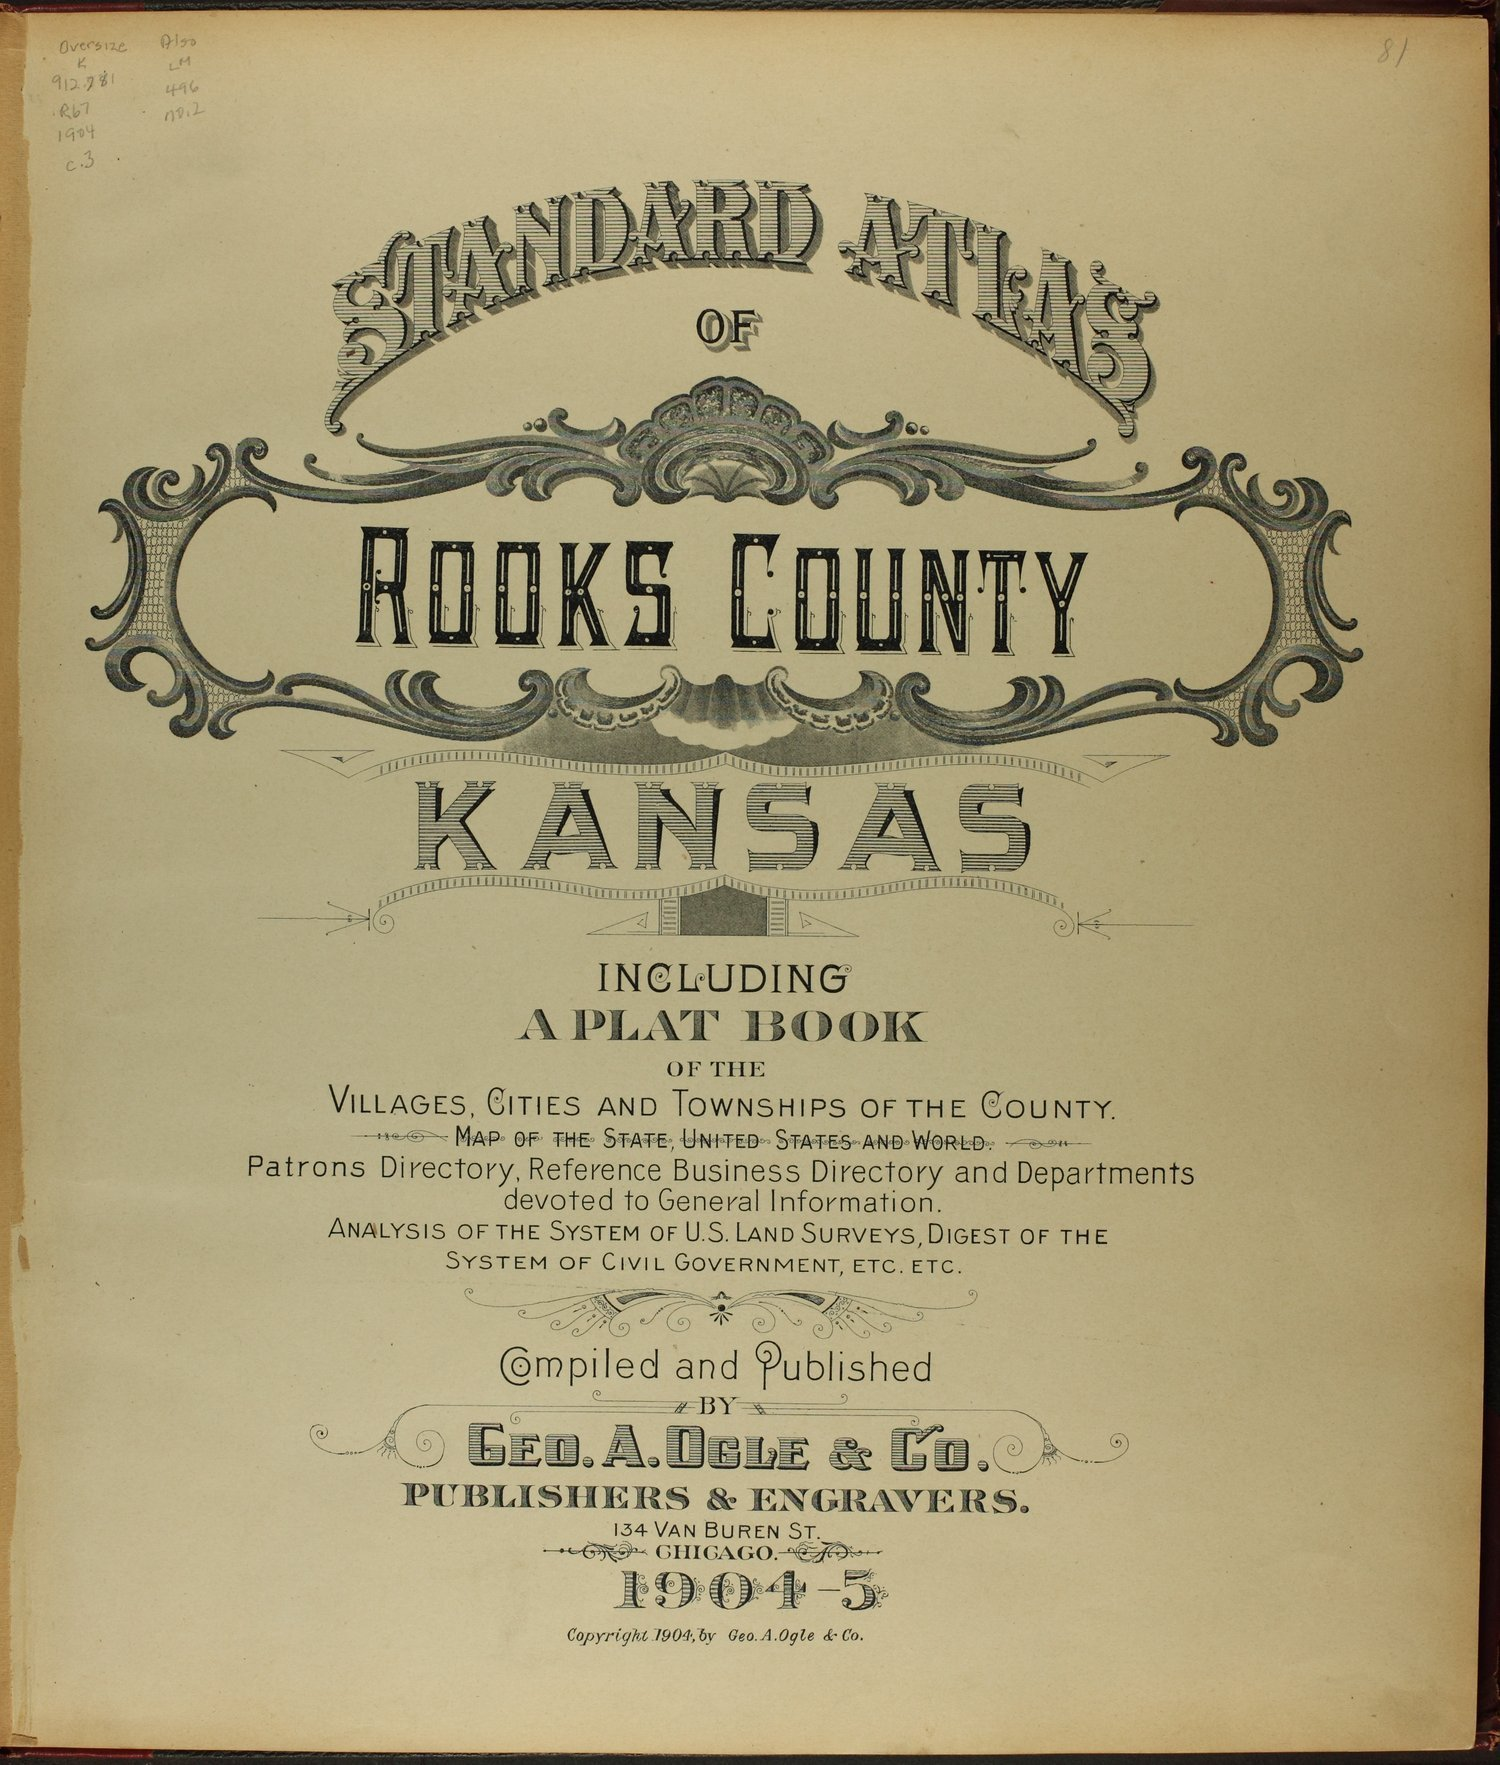 Standard atlas of Rooks County, Kansas - Title Page